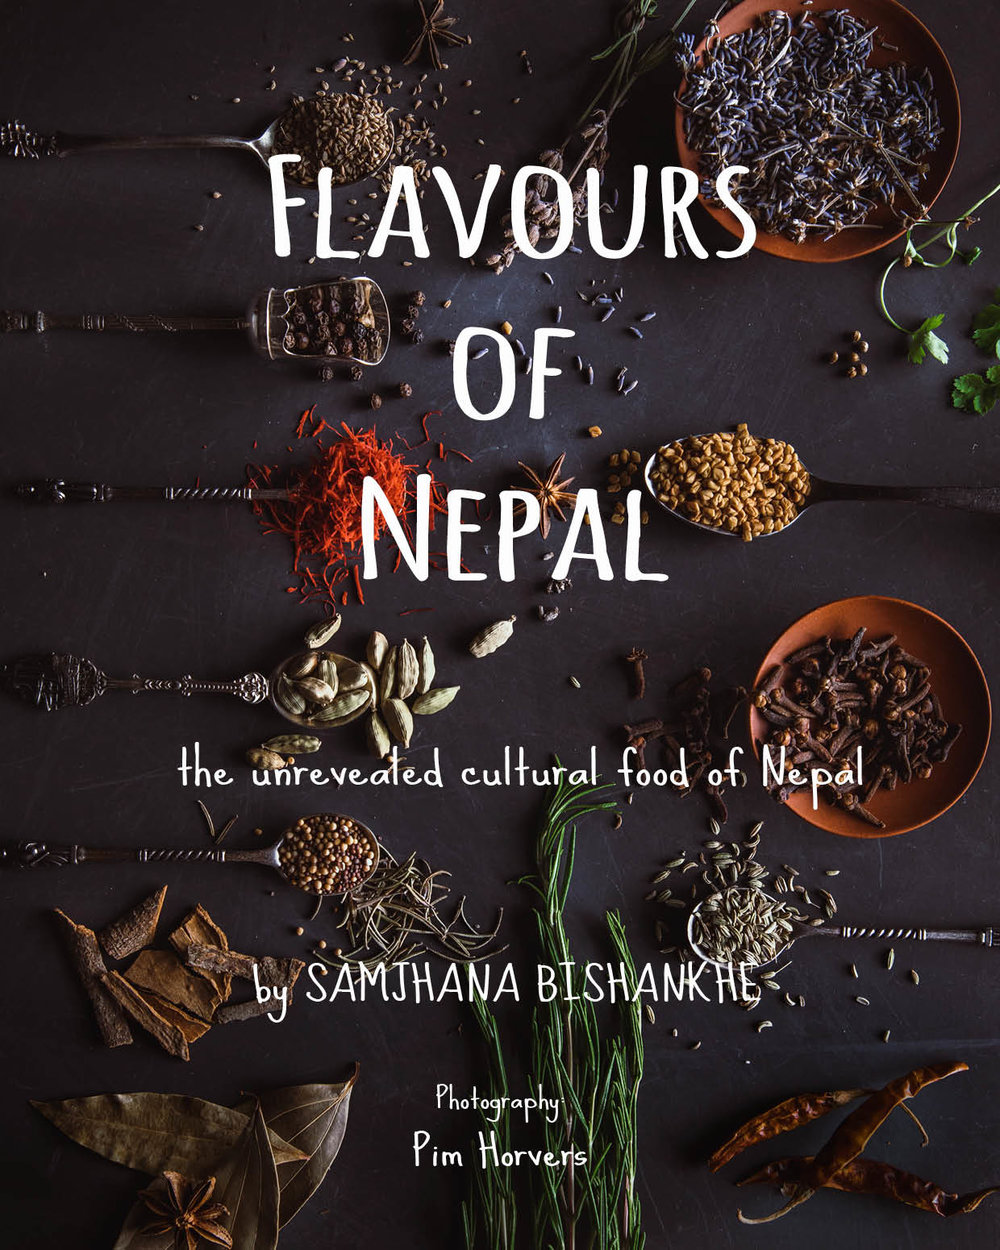 Flavours of Nepal - E-book 2018 - version 1.3-spices -1.jpg